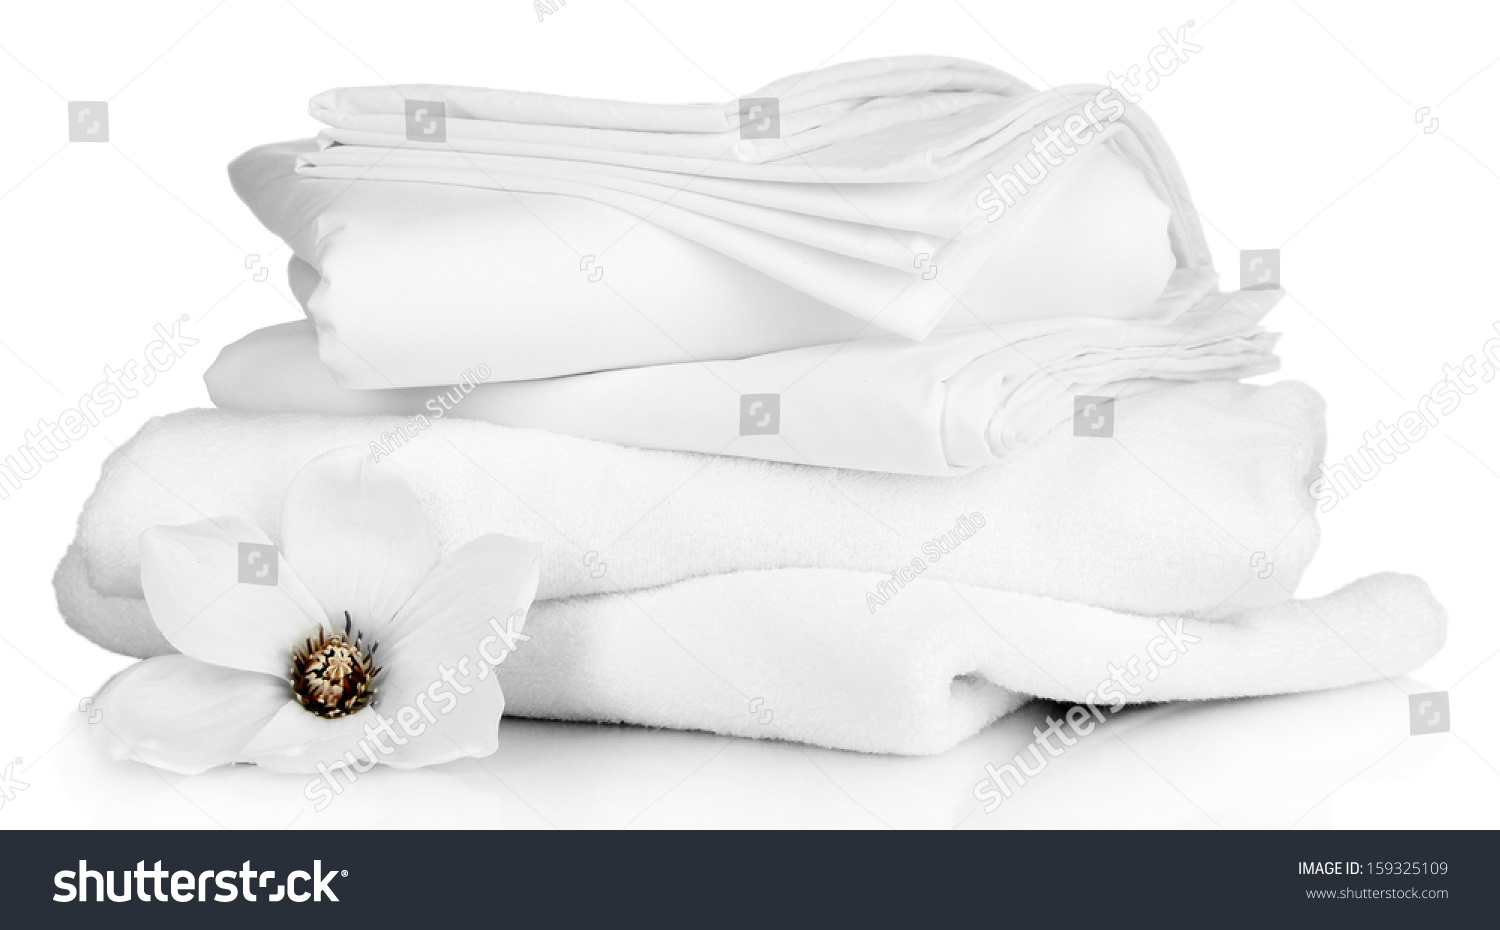 Stack clean bedding sheets towels isolated stock photo 159325109 shutterstock - Wash white sheets keep fresh ...